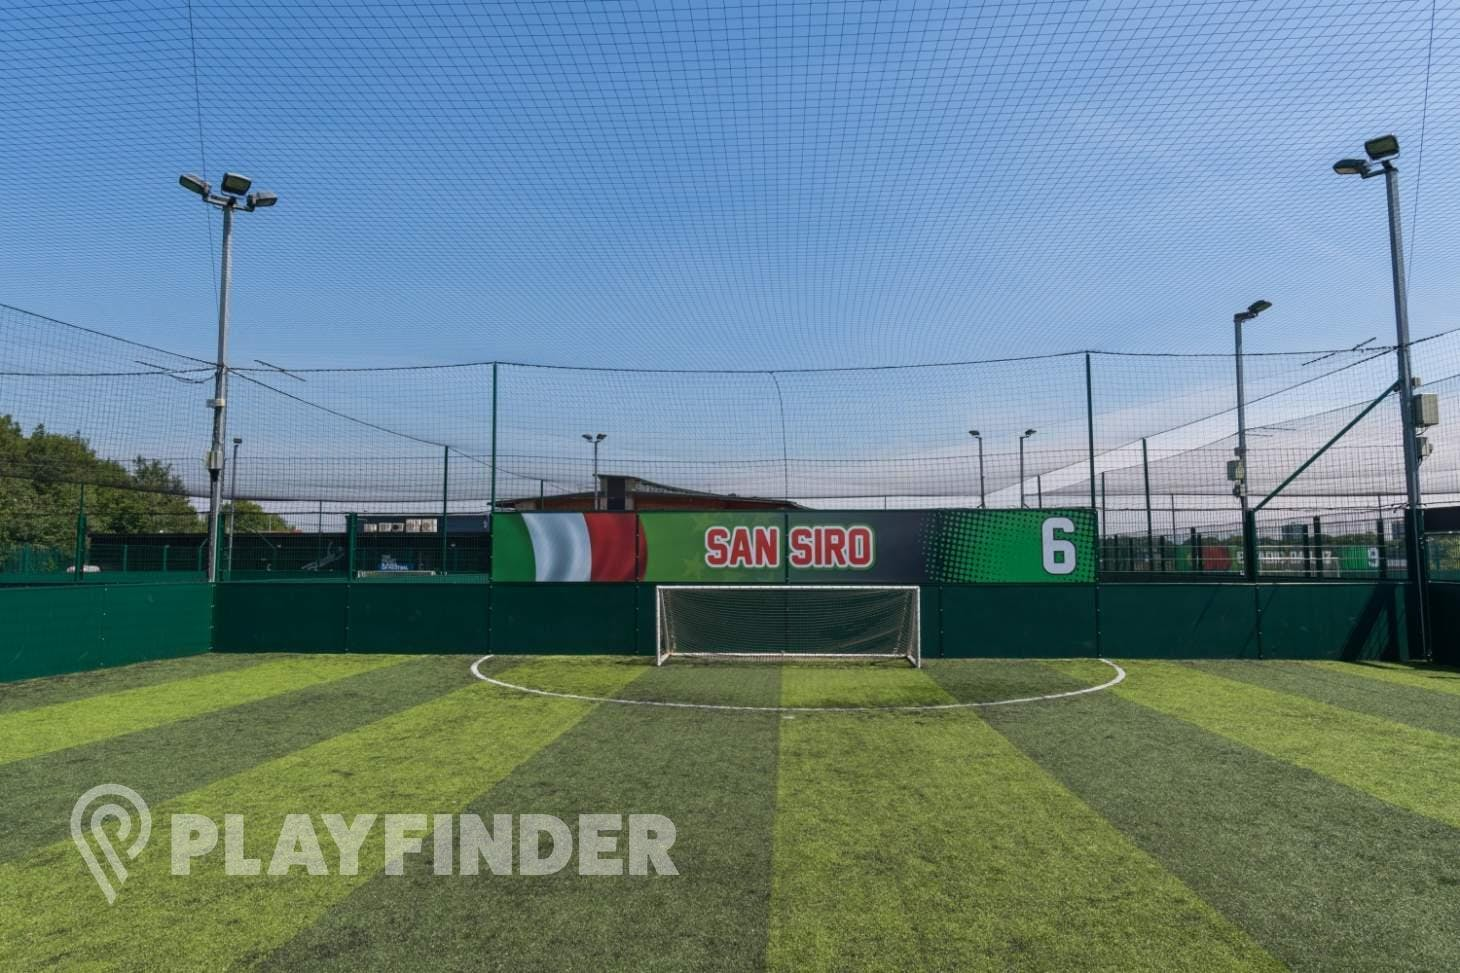 Goals Manchester 5 a side | 3G Astroturf football pitch